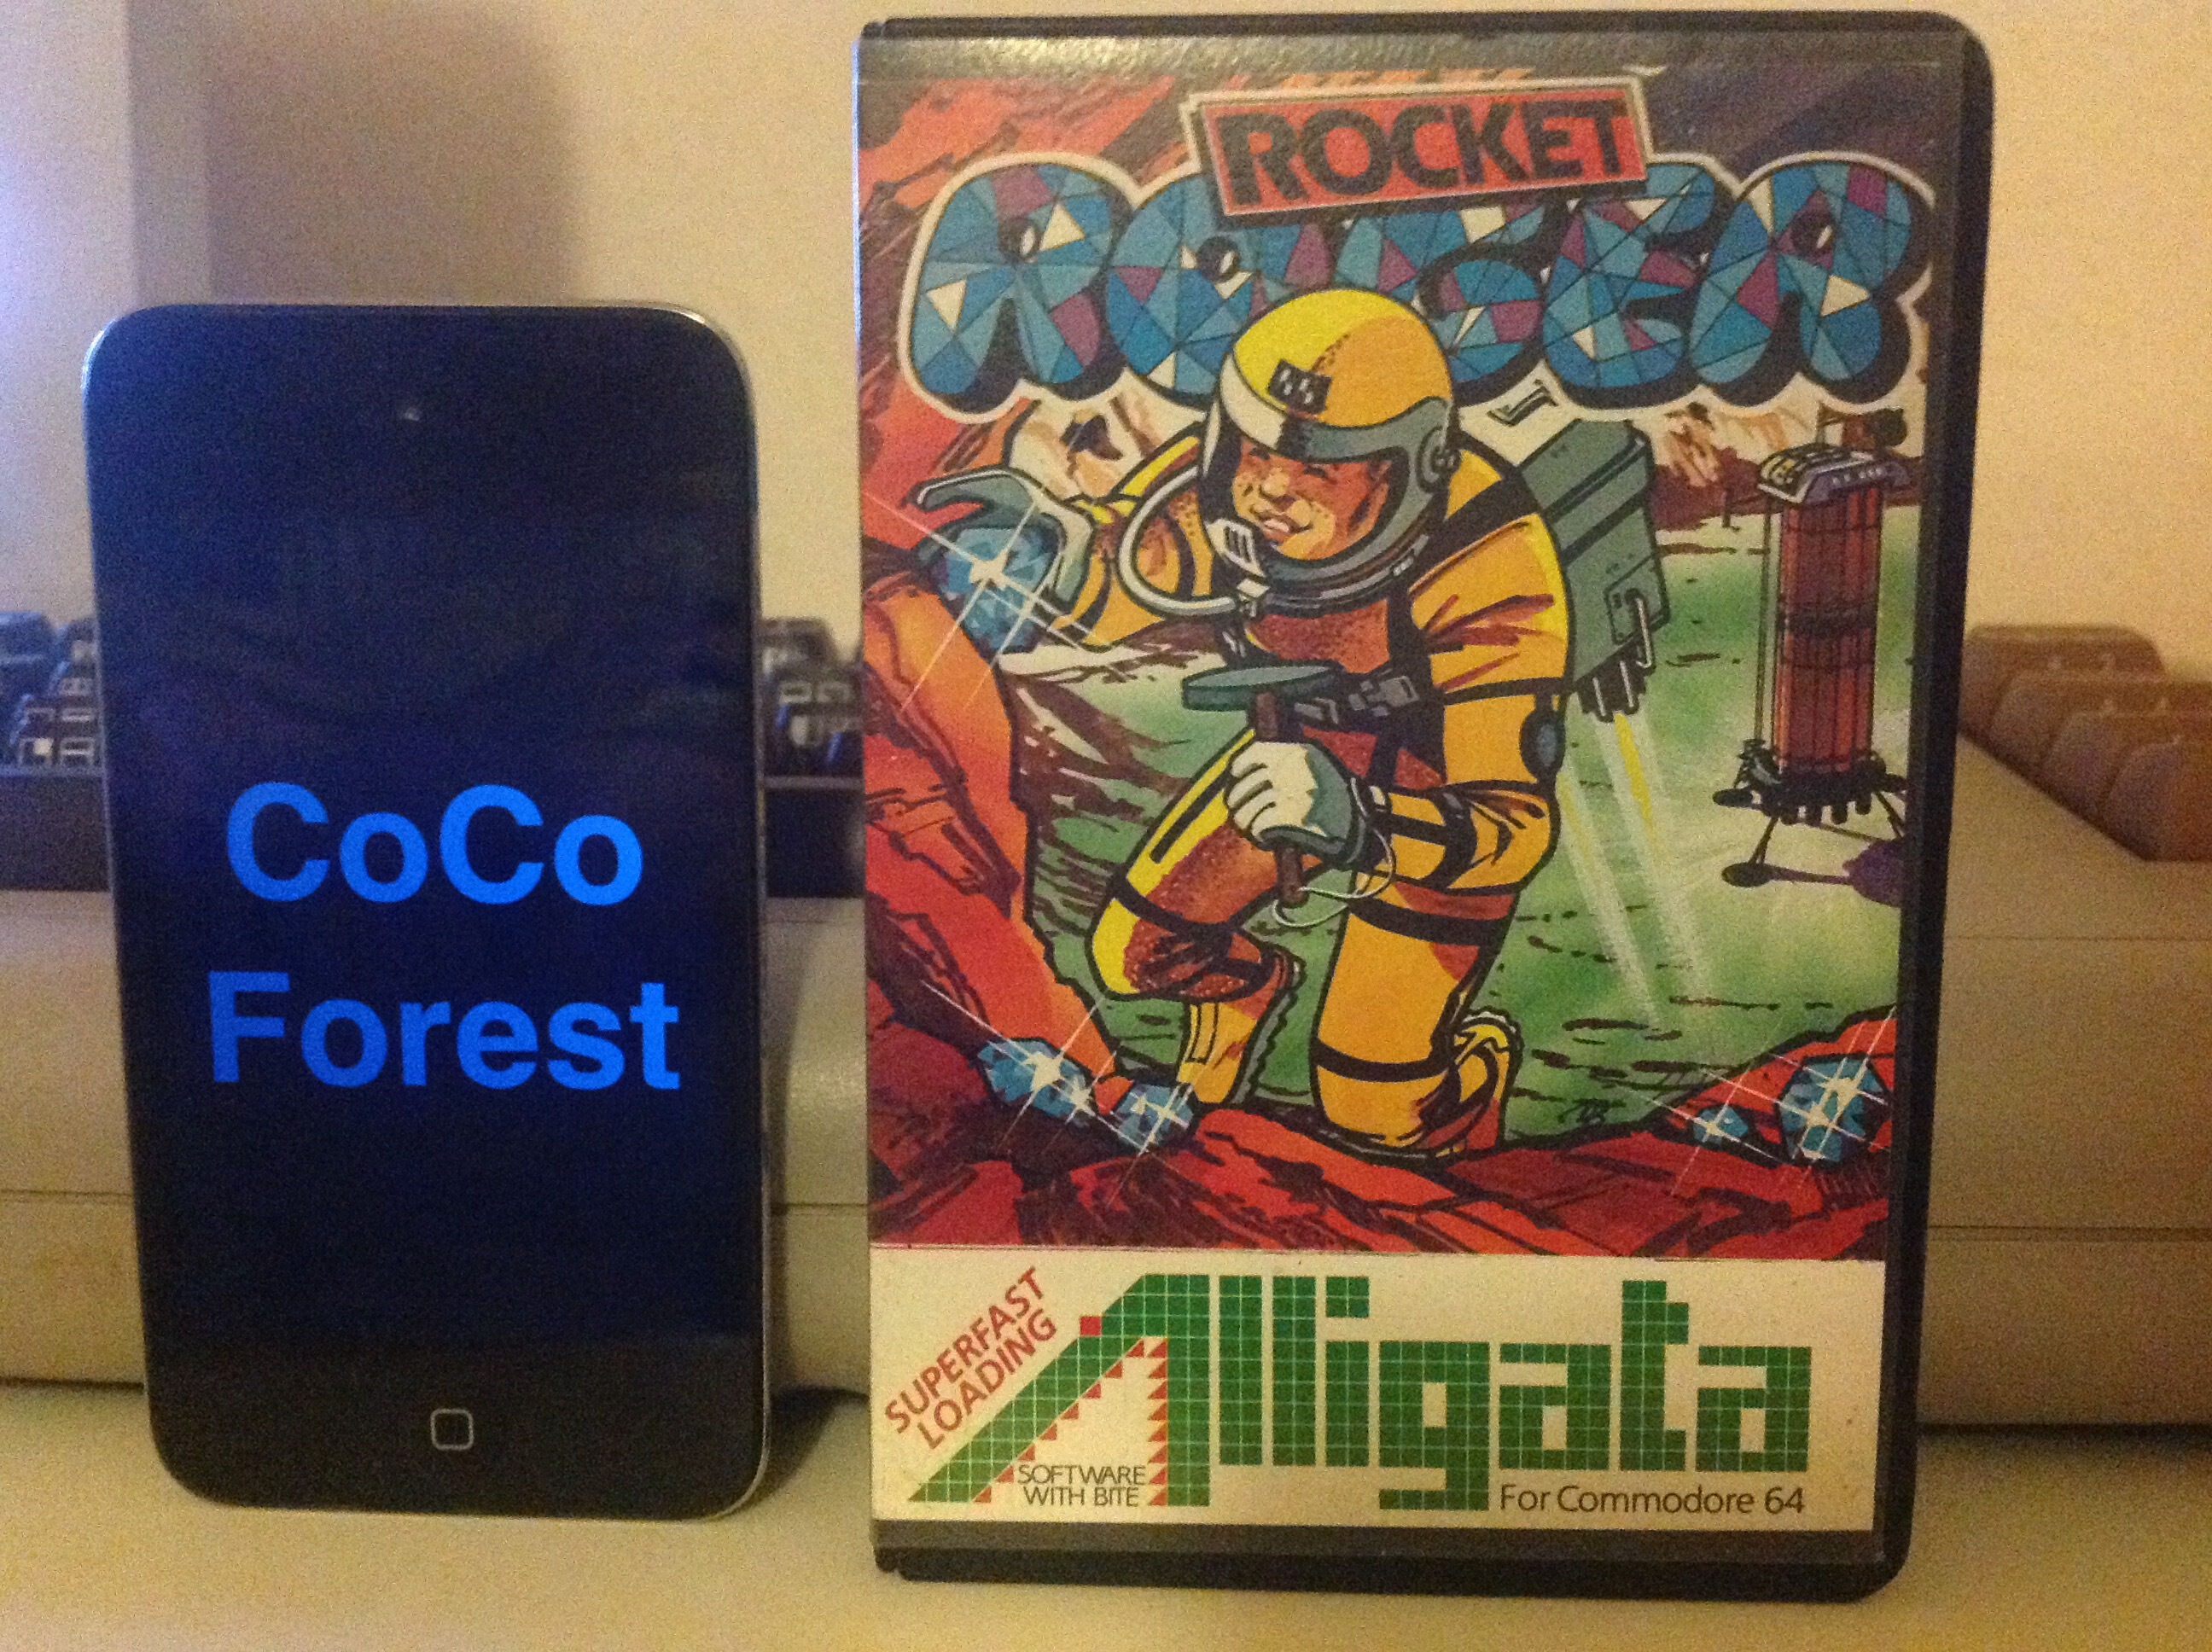 CoCoForest: Rocket Roger [Alligata] (Commodore 64) 28,300 points on 2015-12-18 11:20:30